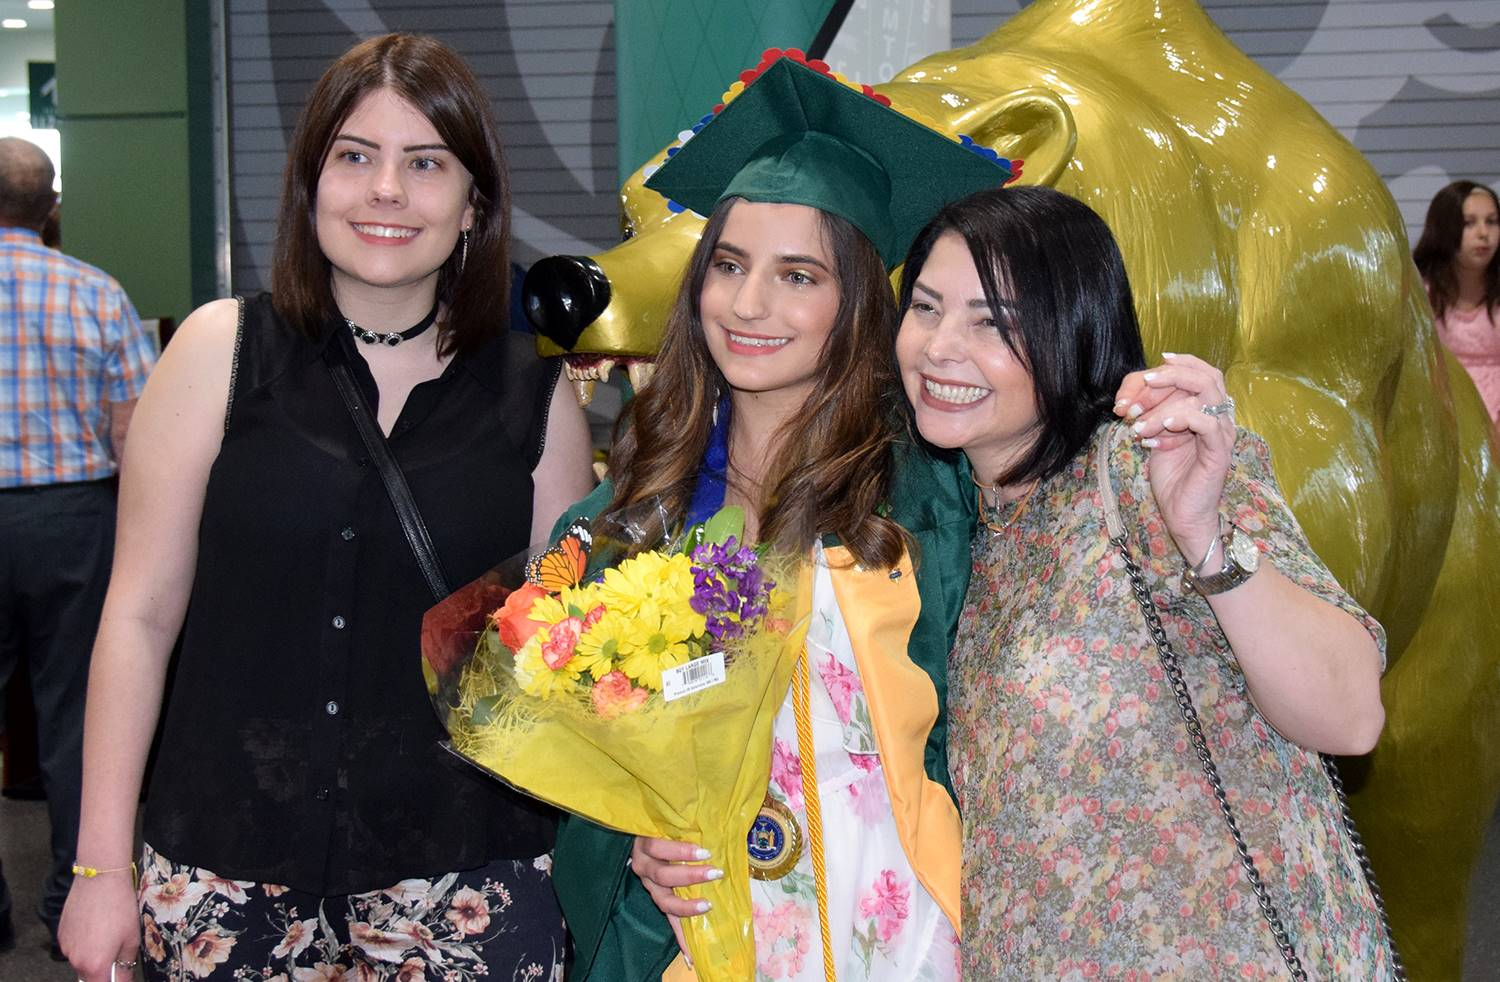 A Vestal High School graduate, her sister and mother stand in front of the Vestal Golden Bear statue